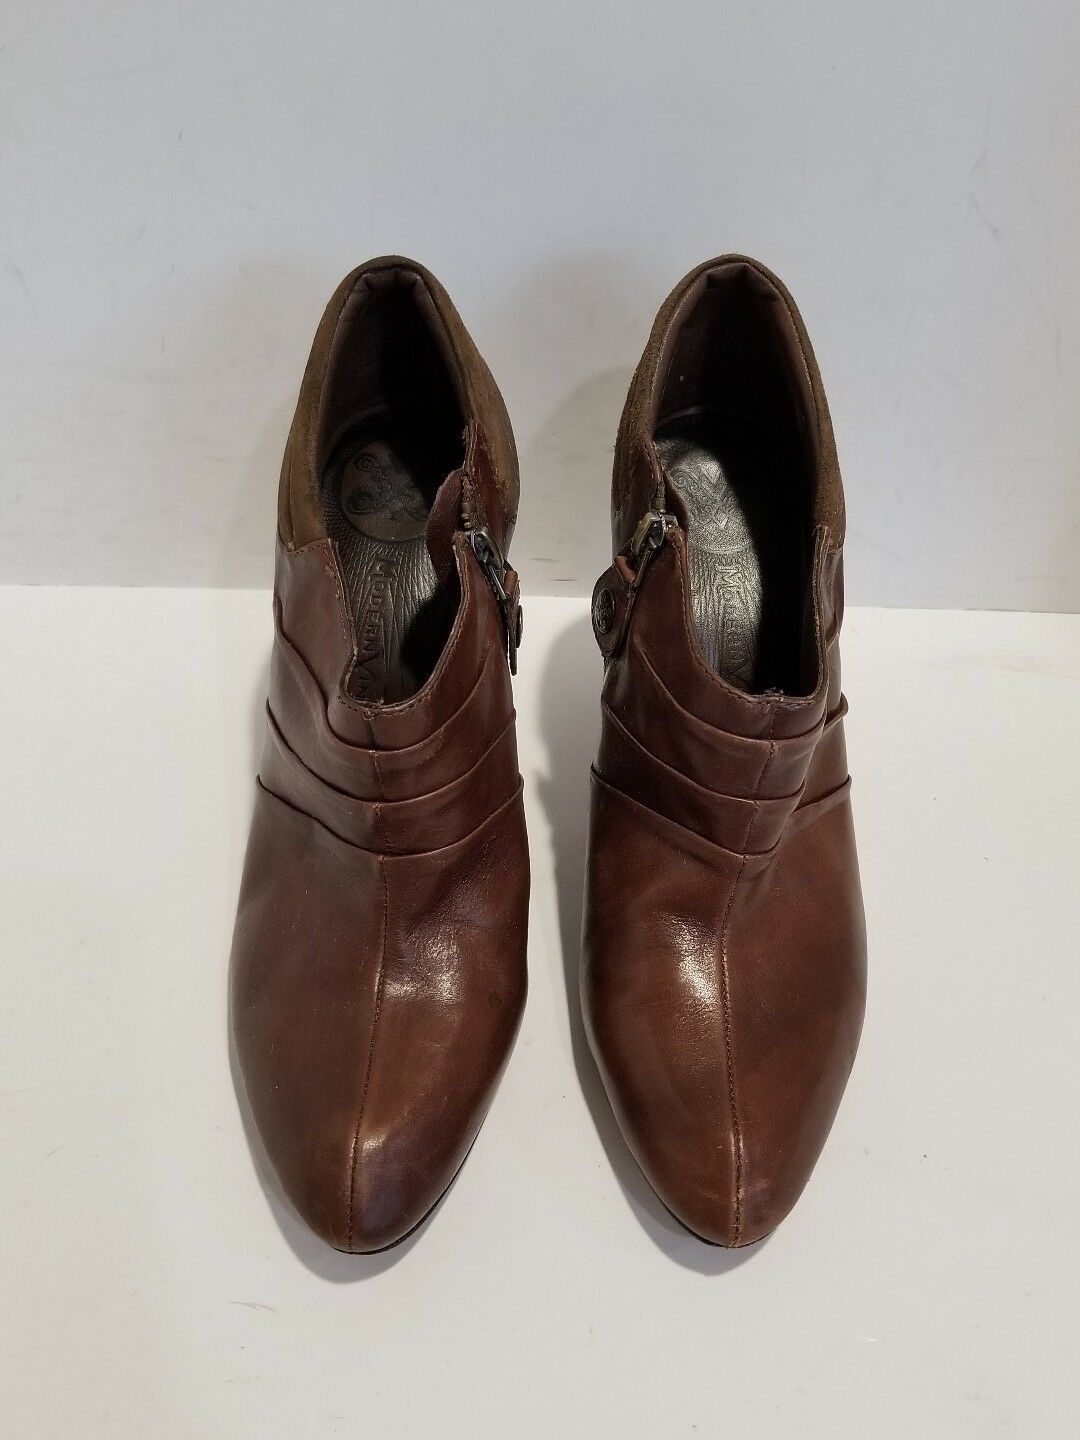 Modern Vintage Womens Brown Leather Ankle Boots Size 38.5/ 8 M